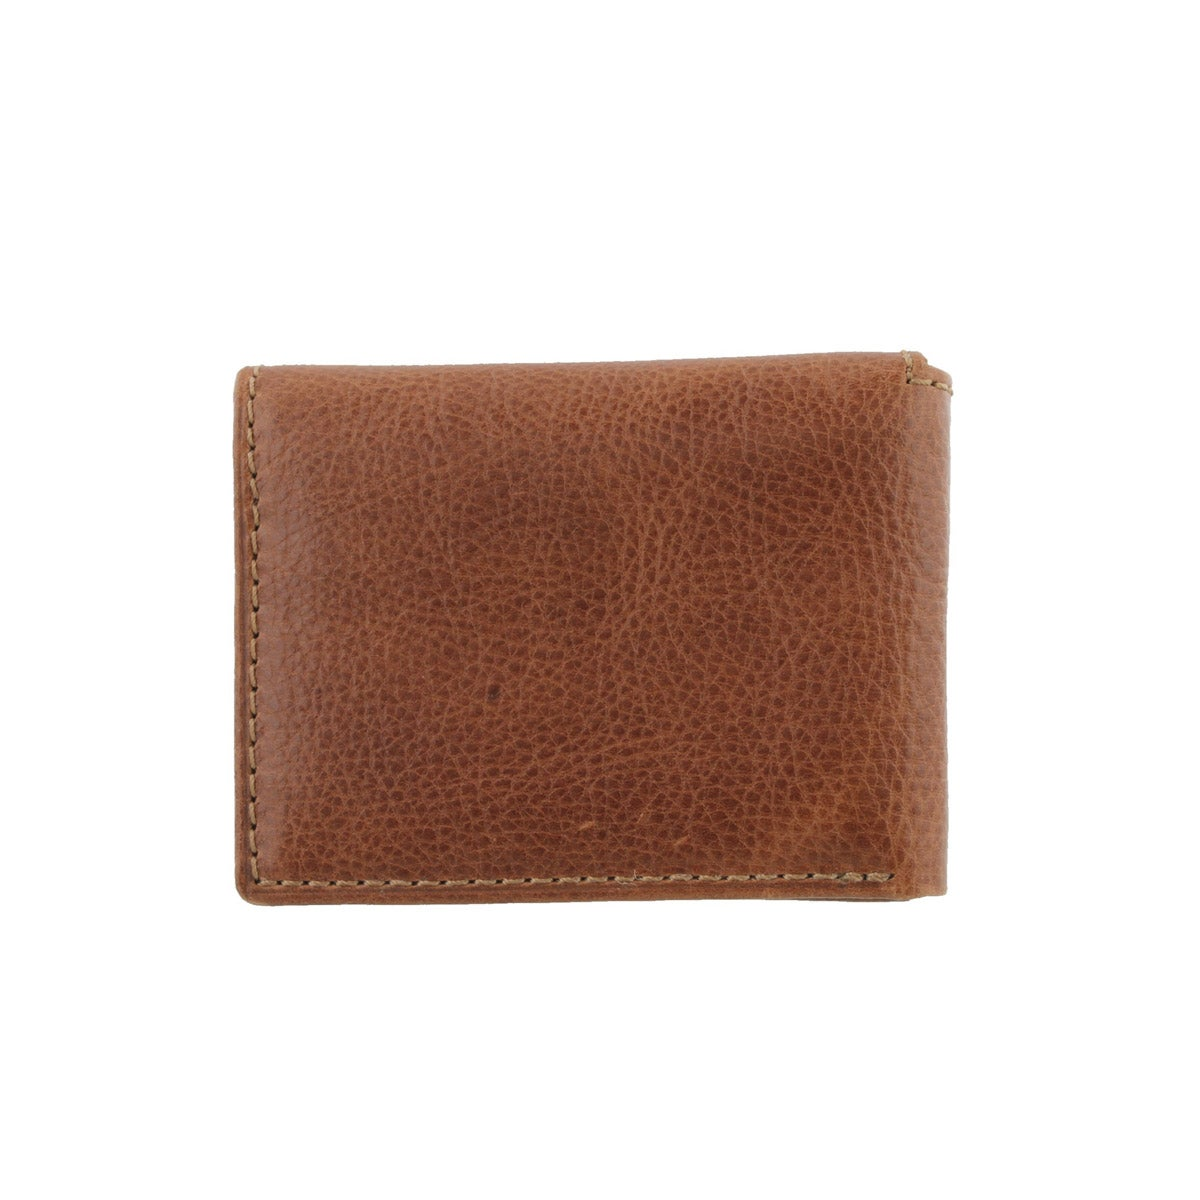 Mns Bradley Execufold tan leather wallet